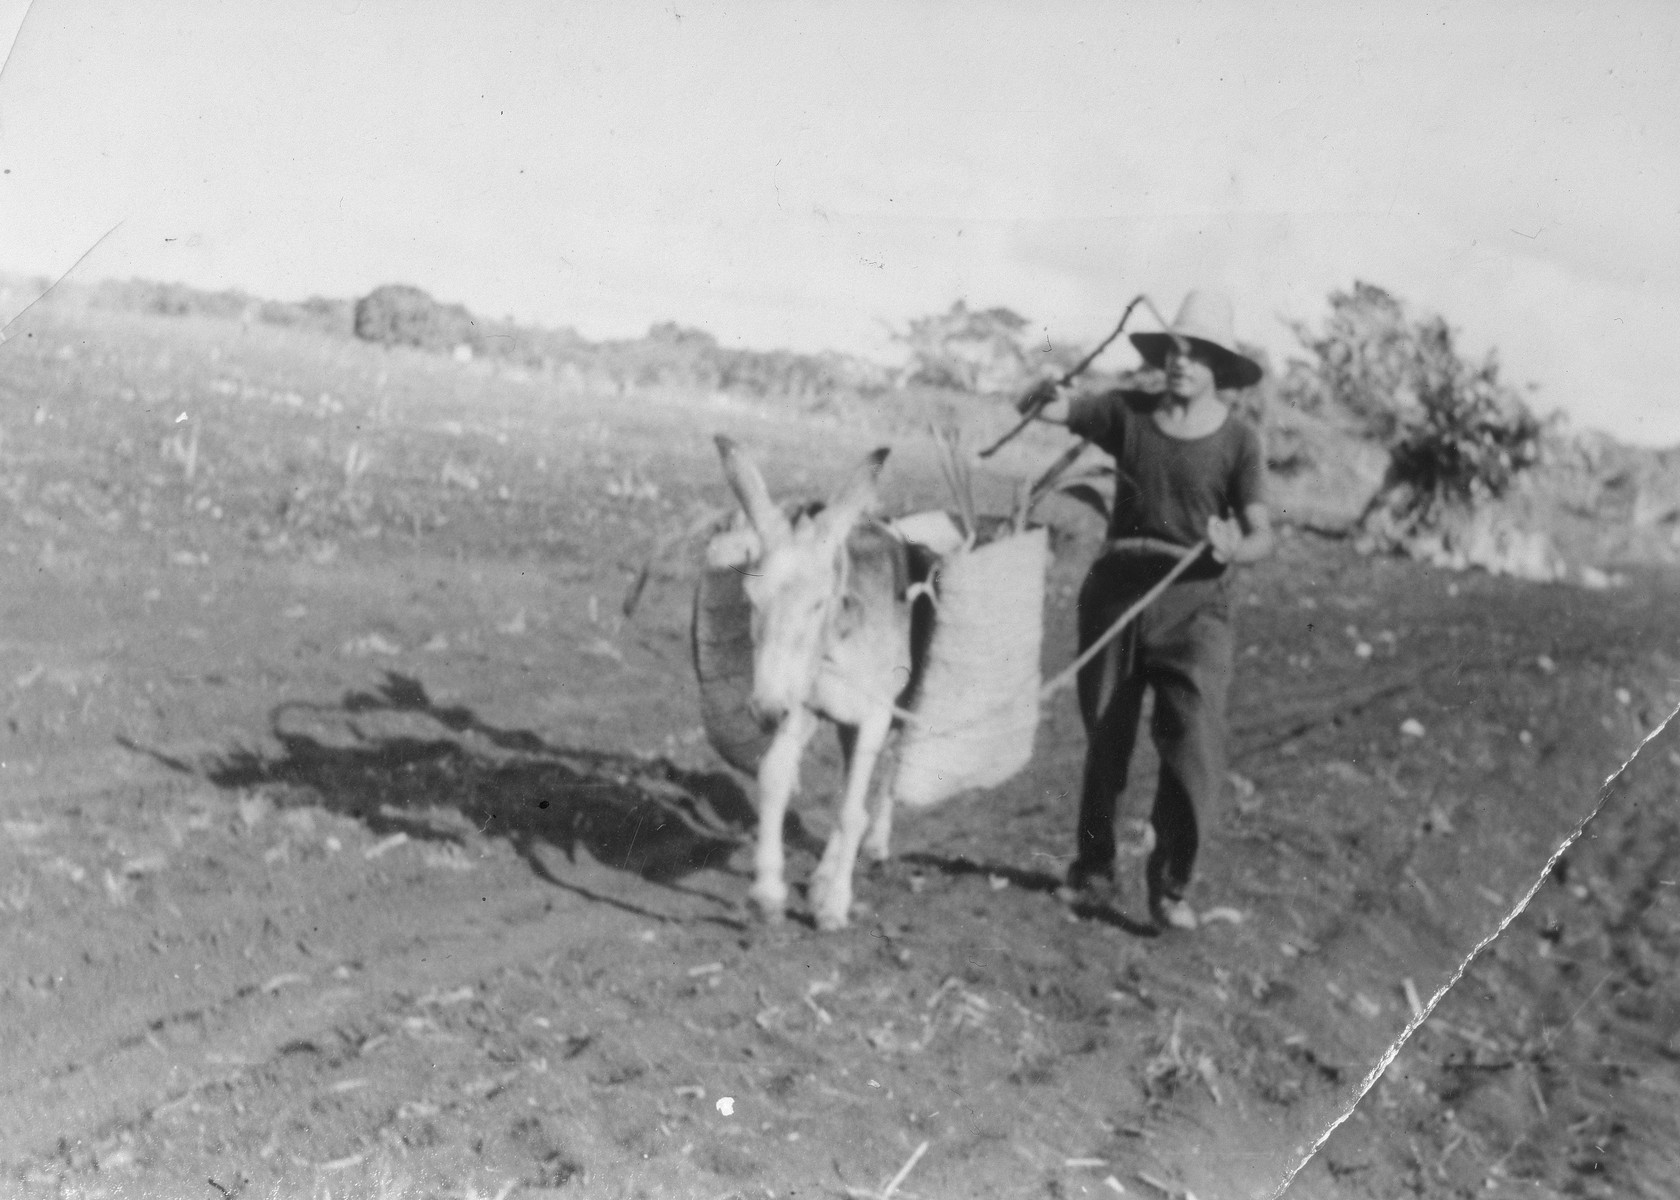 Franz Blumenstein plows a field at the Jewish agricultural colony in Sosua, Dominican Republic.